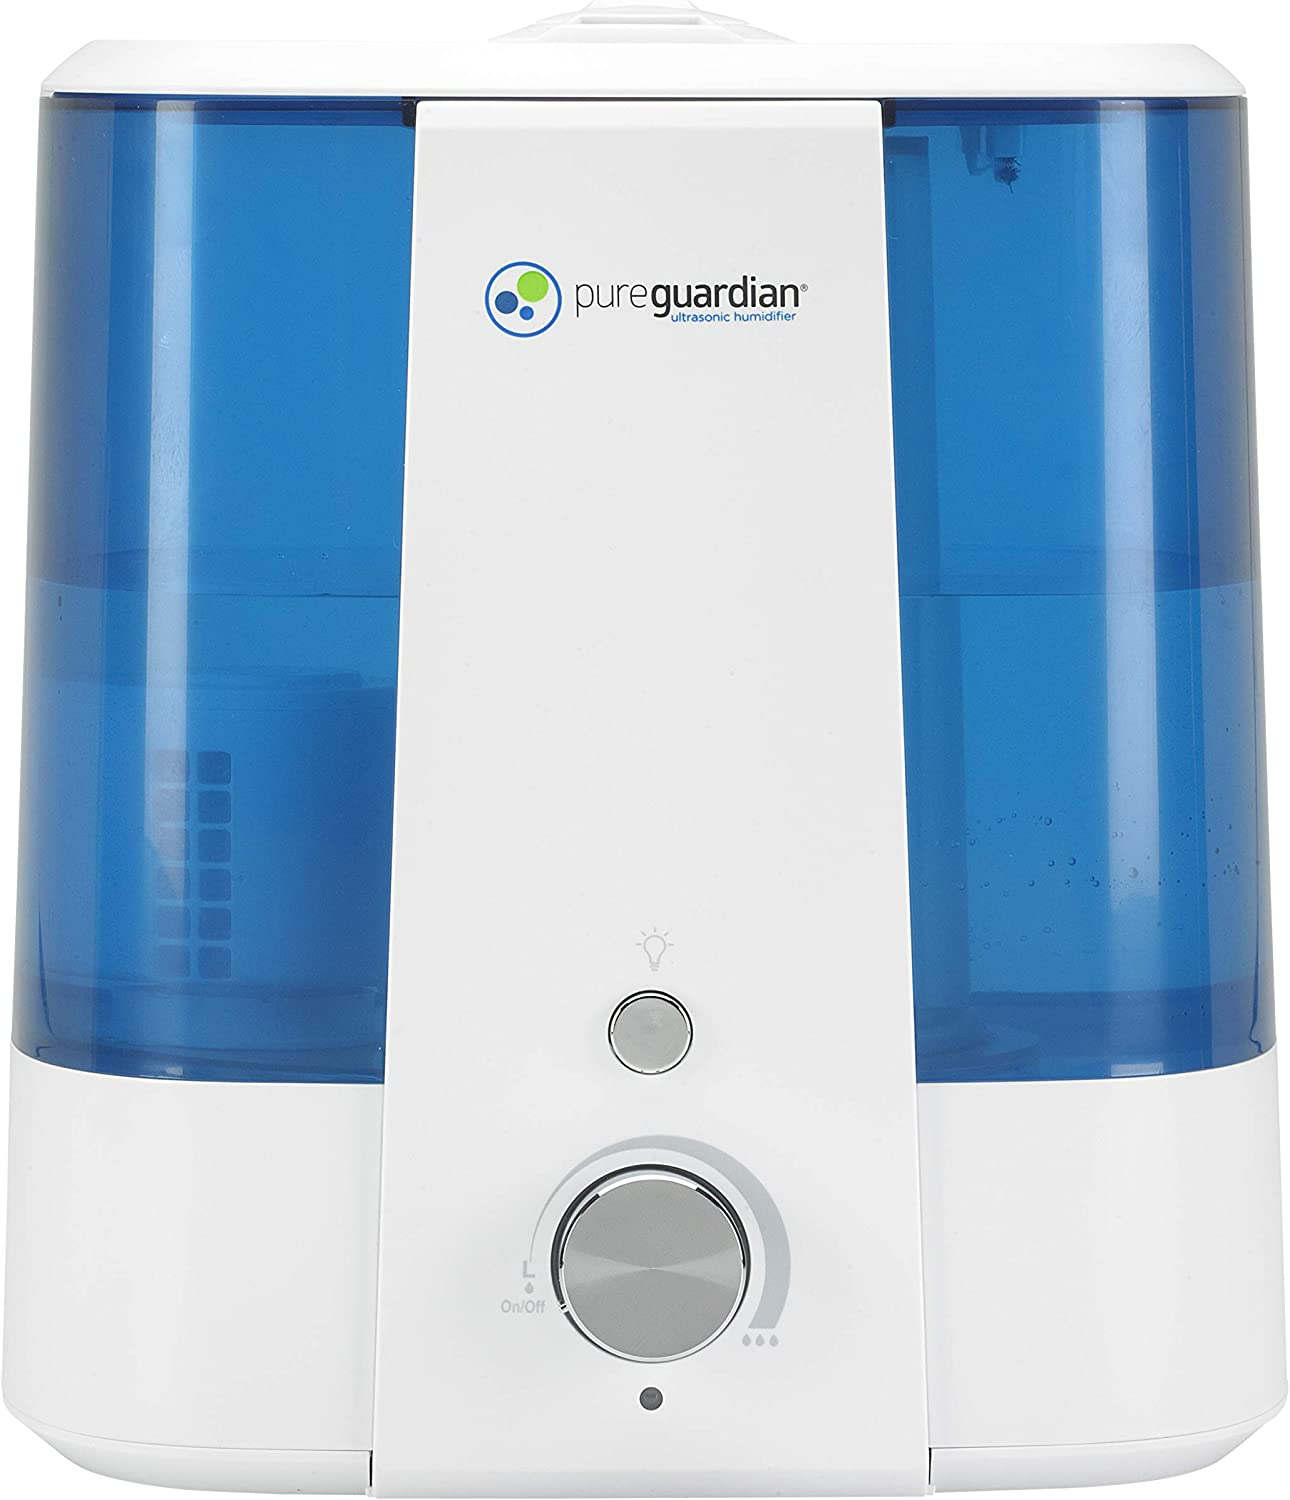 Pure Guardian H1175FL Ultrasonic Cool Mist Humidifier, 90 Hrs. Run Time, 1.5 Gal. Tank Capacity, 390 Sq. Ft. Coverage, Medium Rooms, Quiet, Filter Free, Treated Tank Resists Mold, Essential Oil Tray